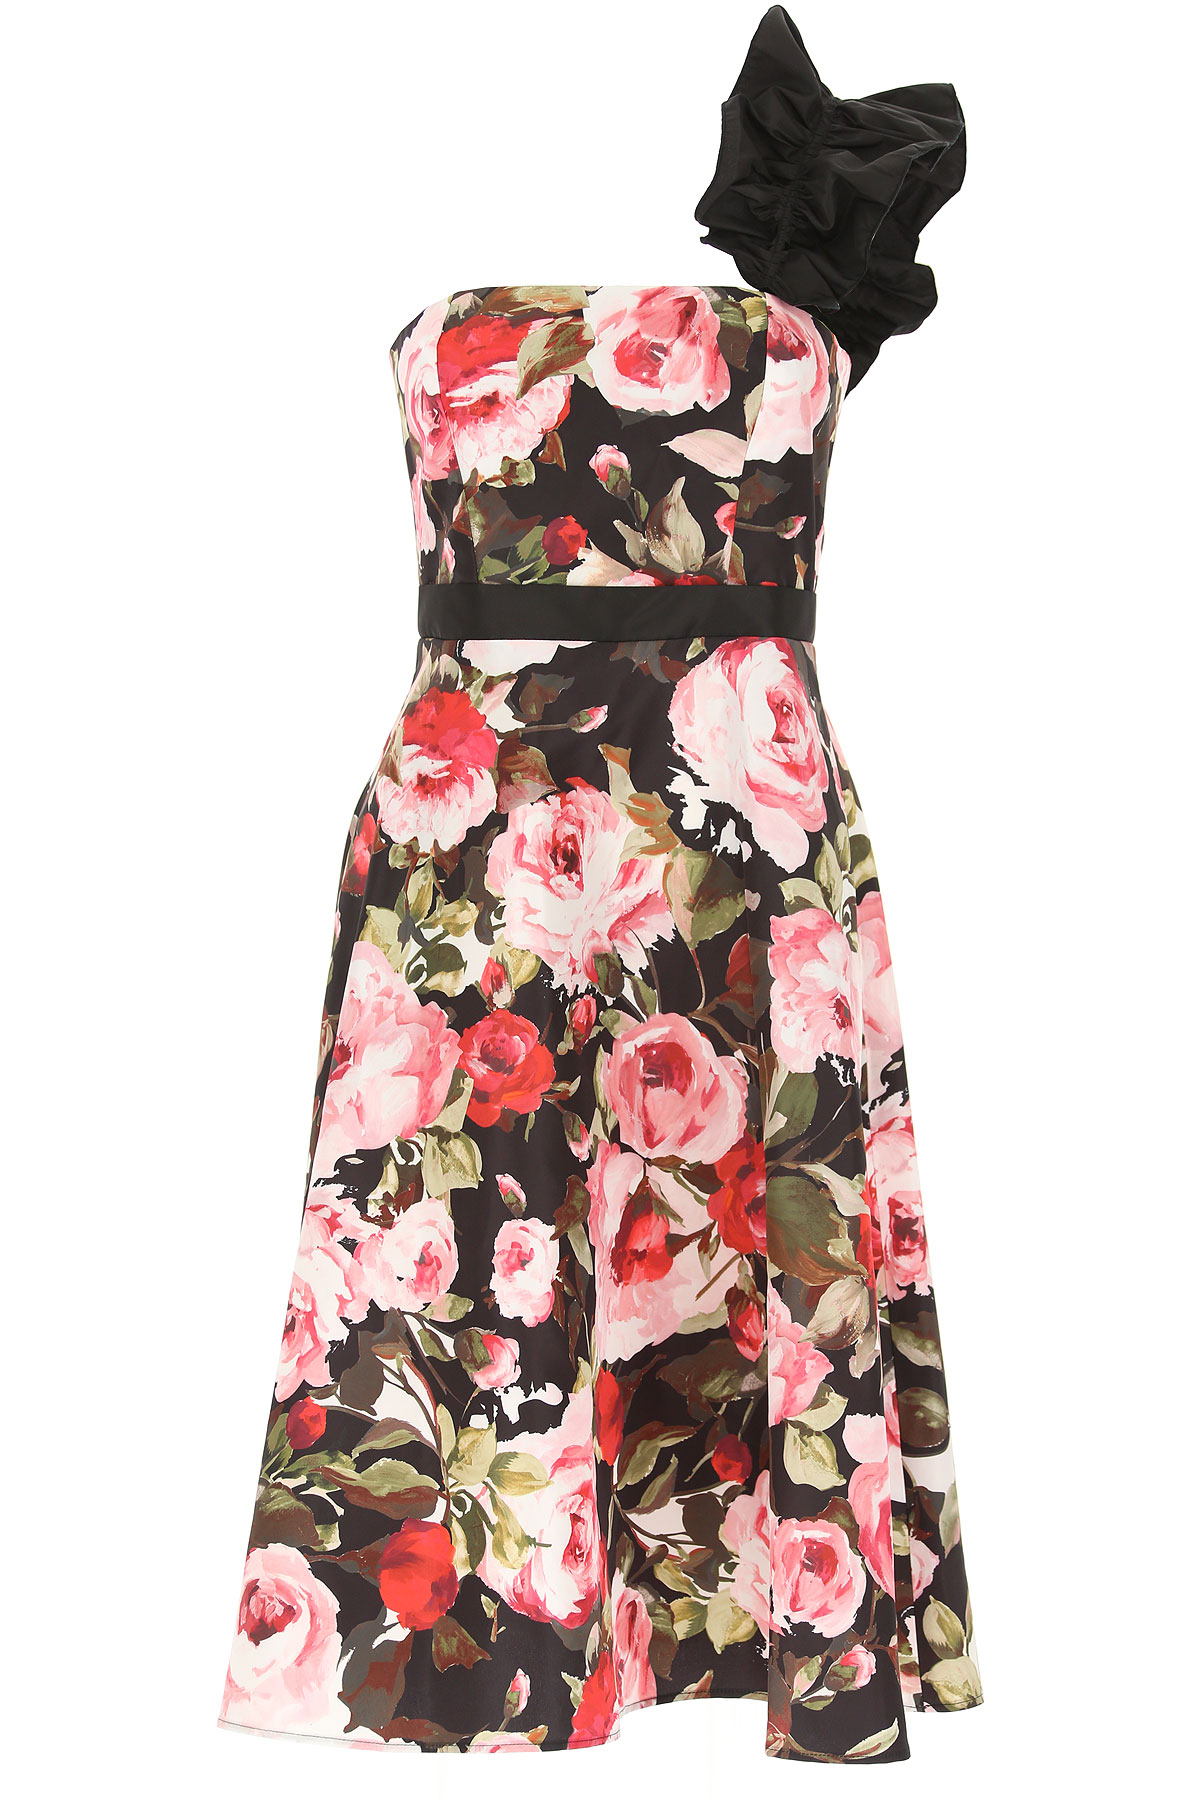 Image of Liu Jo Dress for Women, Evening Cocktail Party, floral, polyestere, 2017, 4 6